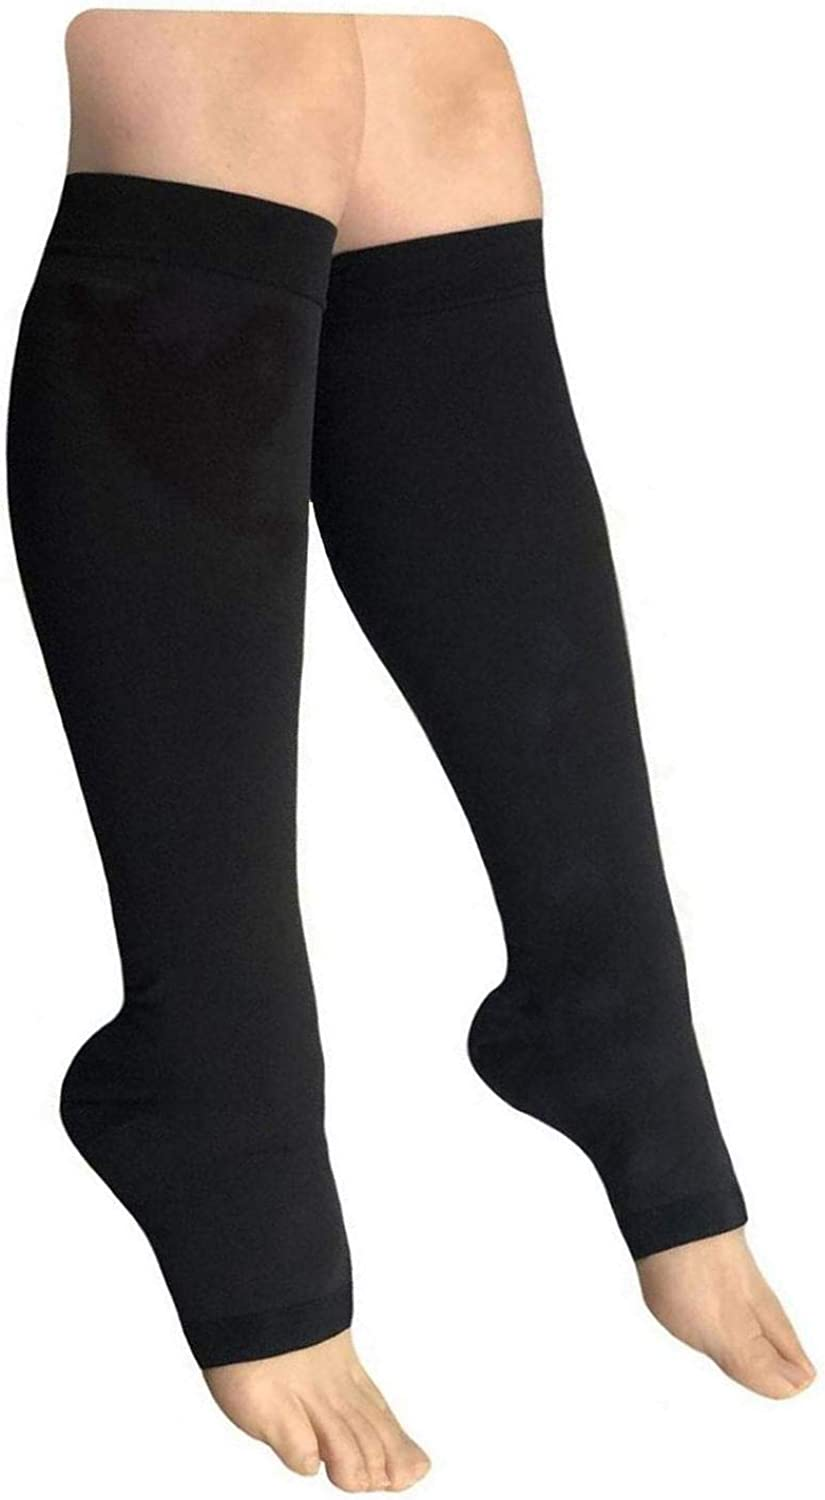 HealthyNees Open Toe 30-40 mmHg Extra Firm Compression Edema Sock Calf Support